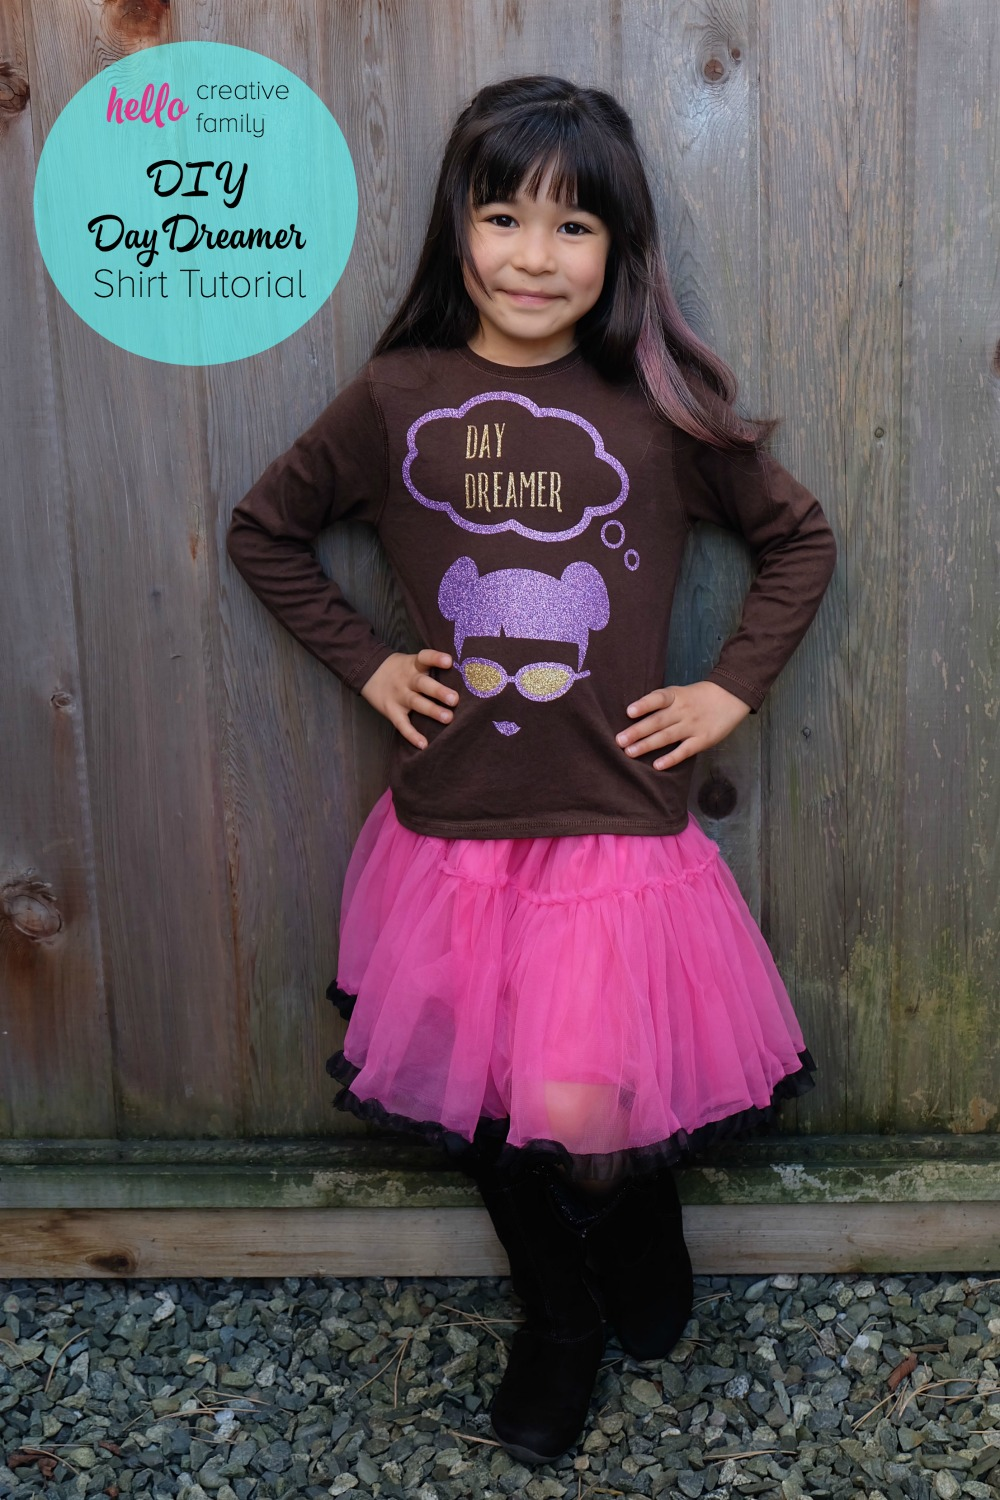 The perfect shirt for the dreamer in your life! This DIY Day Dreamer shirt can be made in minutes using the Cricut Explore. The project has a cute little girl with pigtail buns and says Day Dreamer and would be lovely for girl's clothing!